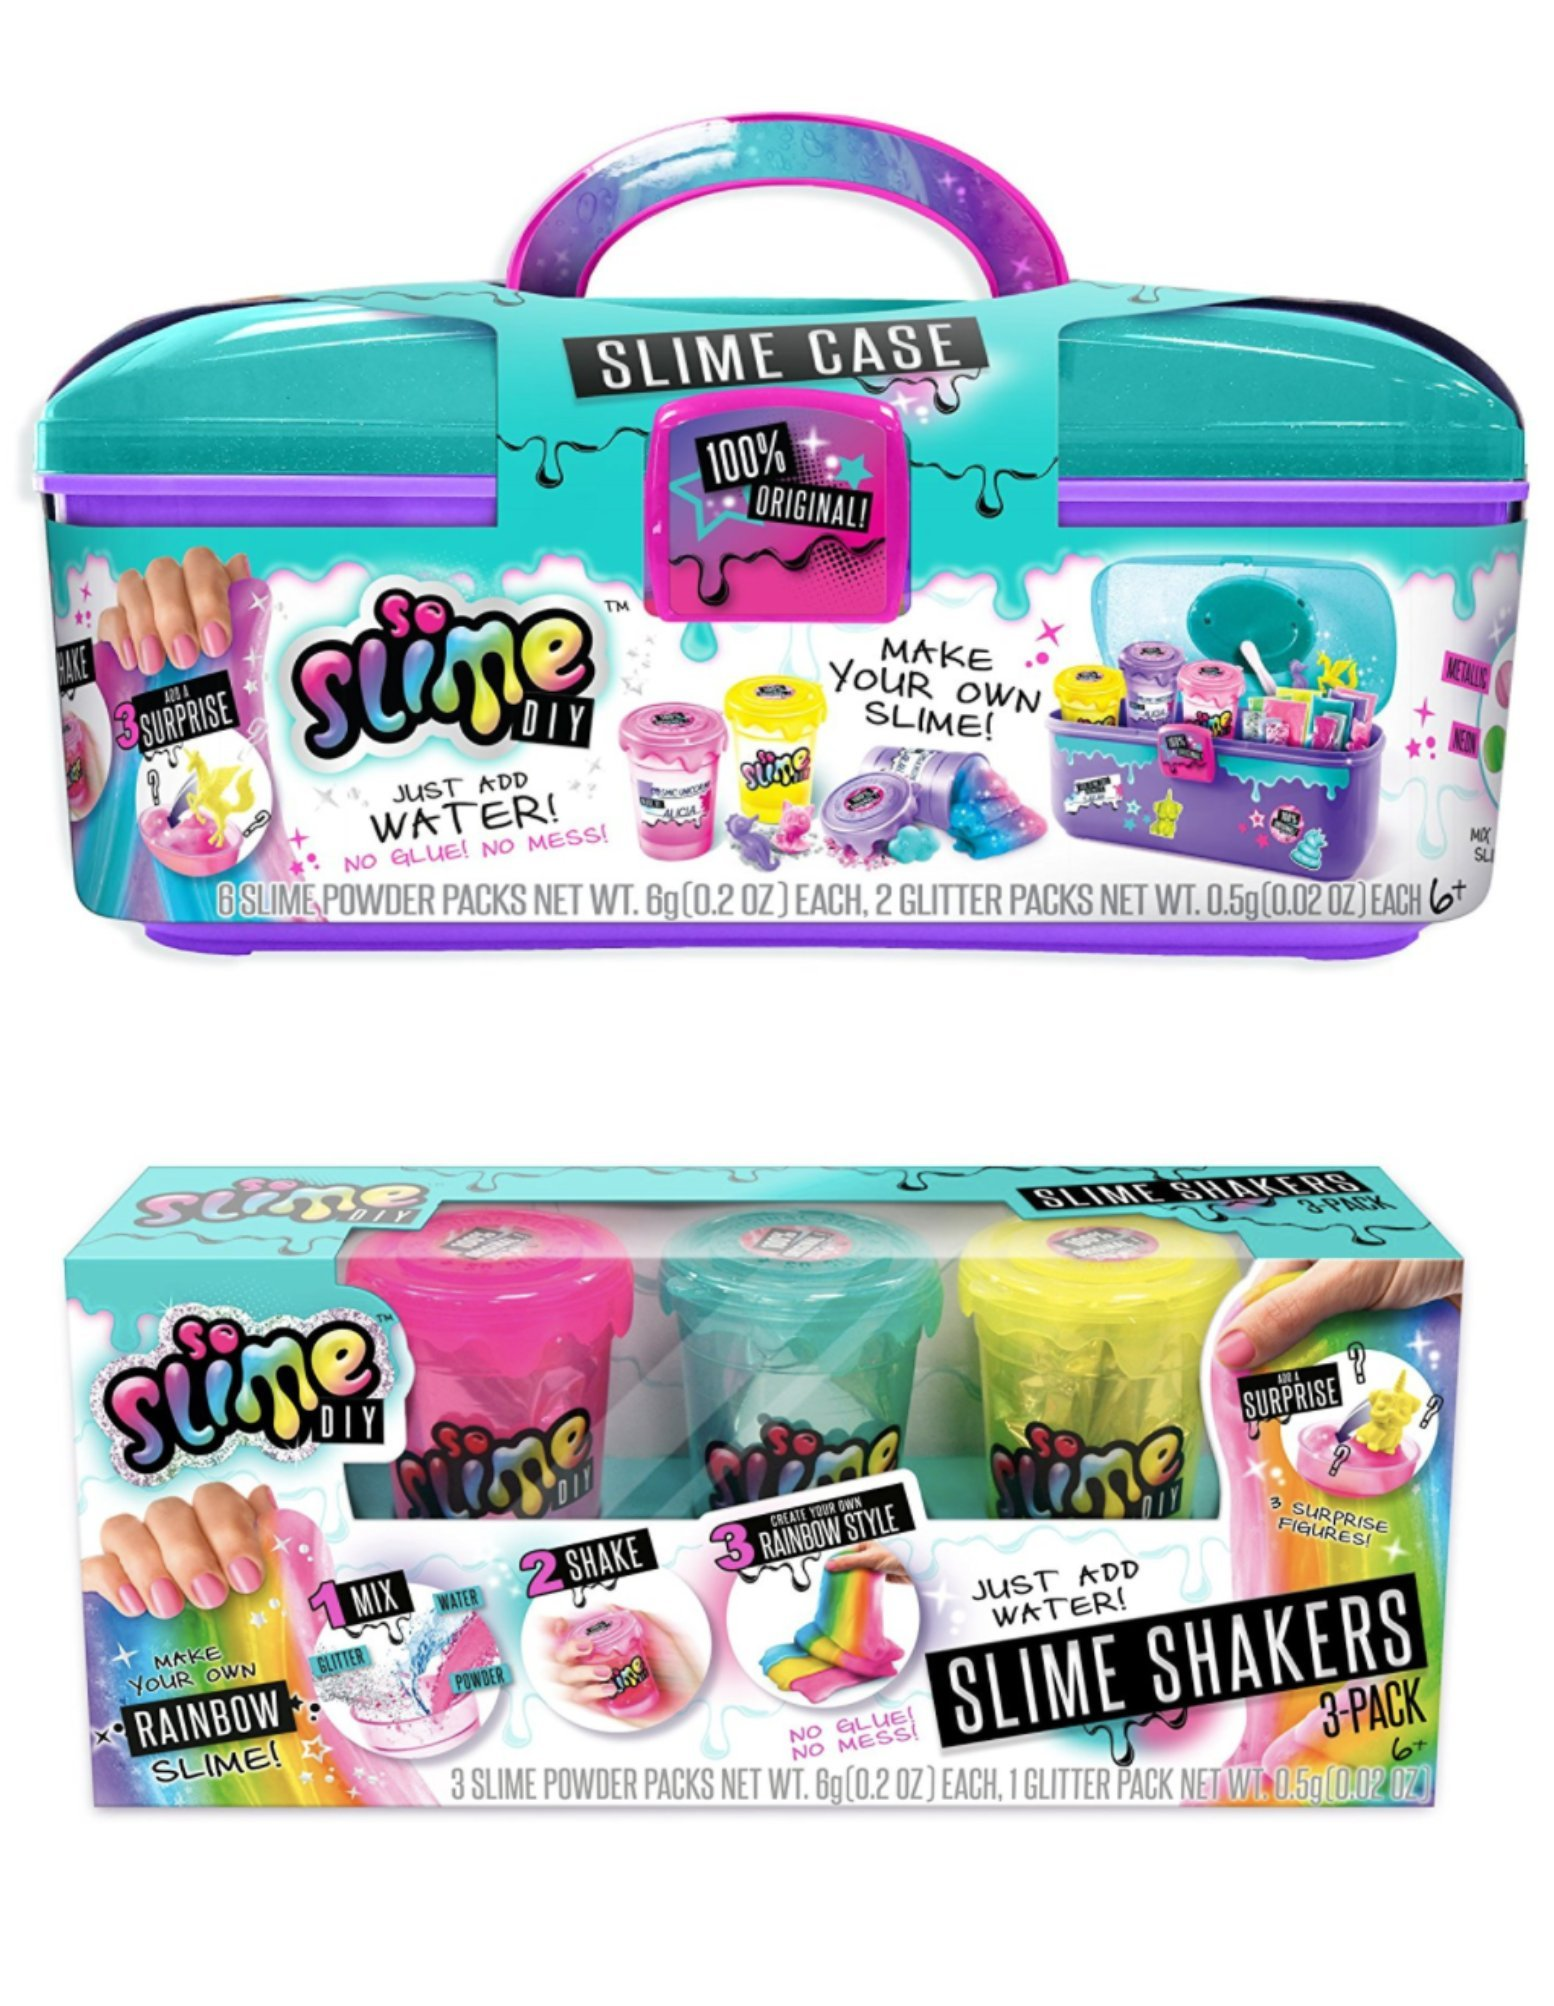 So Slime Storage Case + Rainbow 3 Pack! Make Your Own Slime!